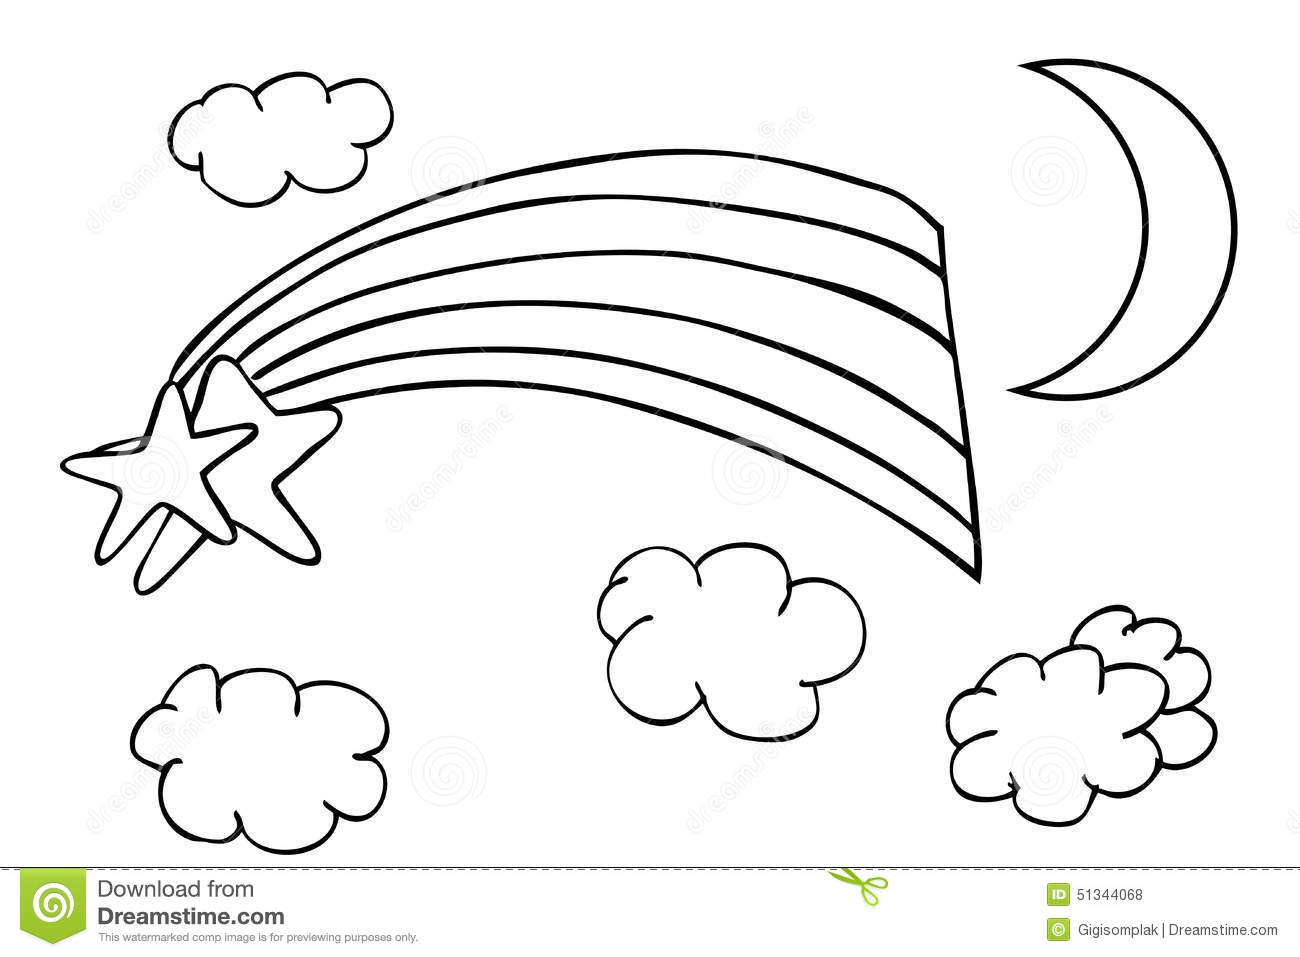 Outline Sketch Rainbow And Cloud Stock Vector